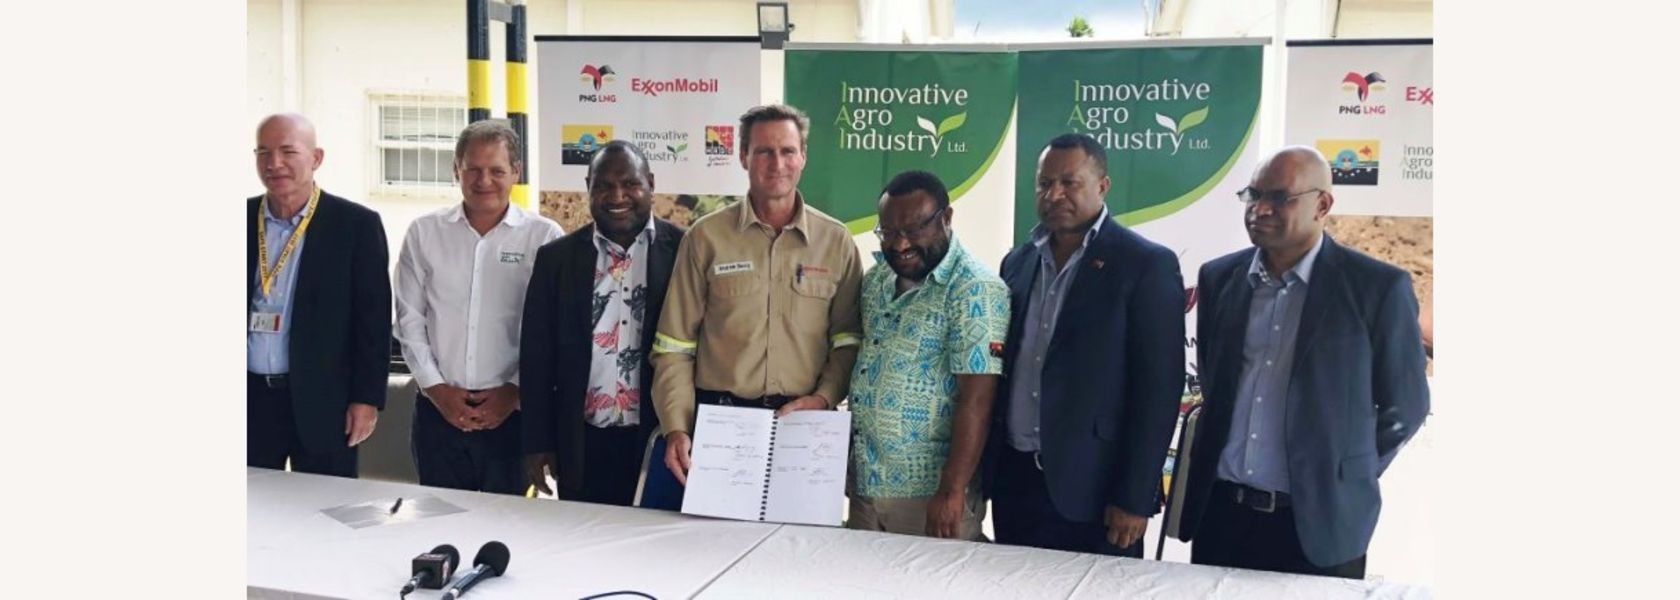 Exxon in agriculture venture for Hela.